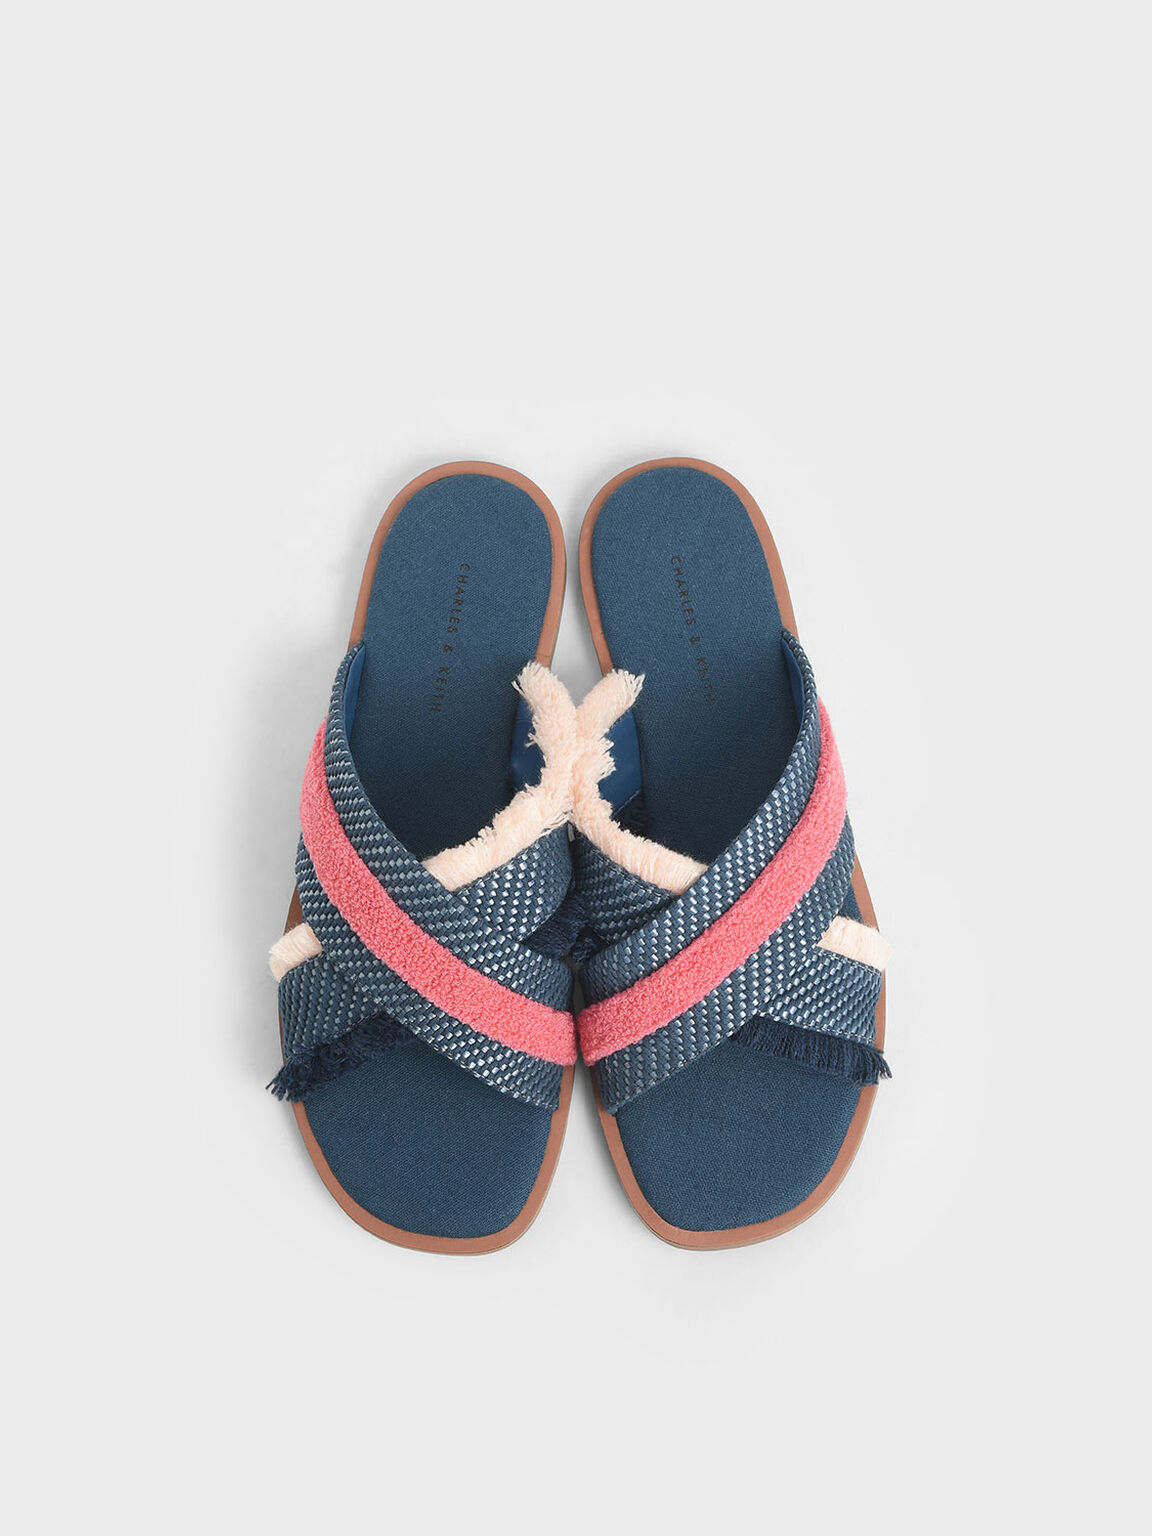 Multicoloured Woven Slide Sandals, Teal, hi-res